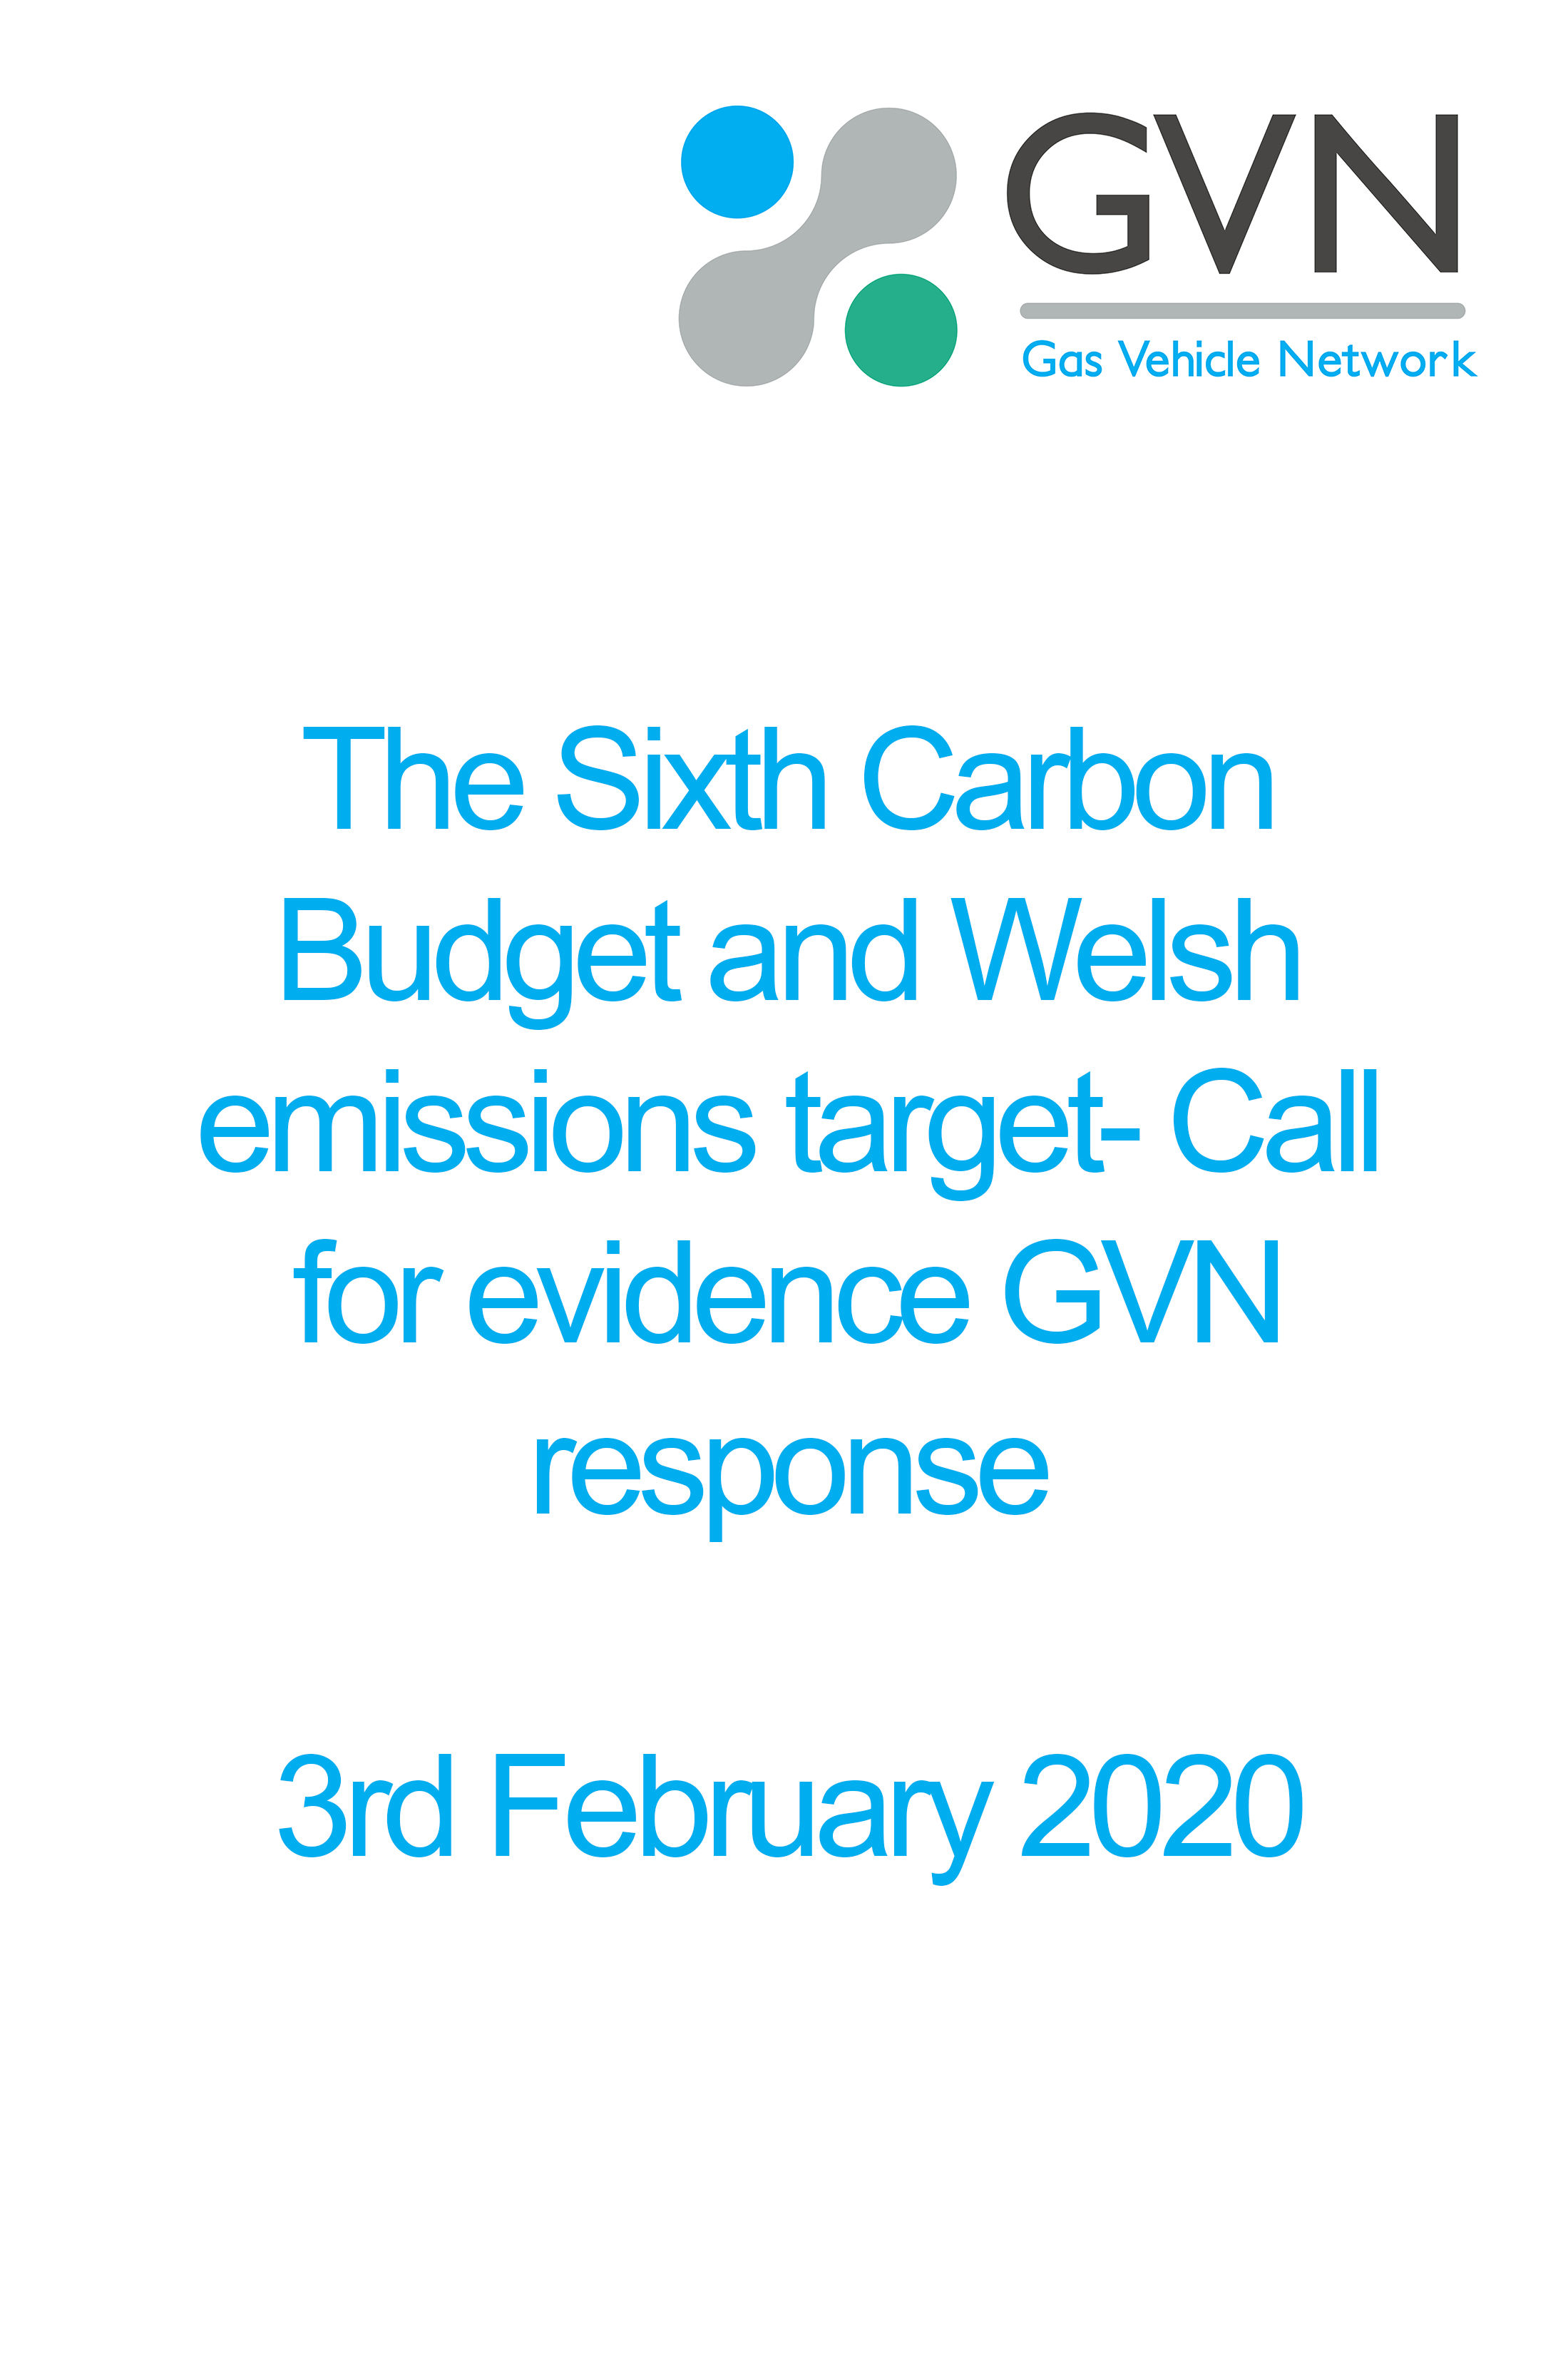 The Sixth Carbon Budget and Welsh emissions target- Call for evidence